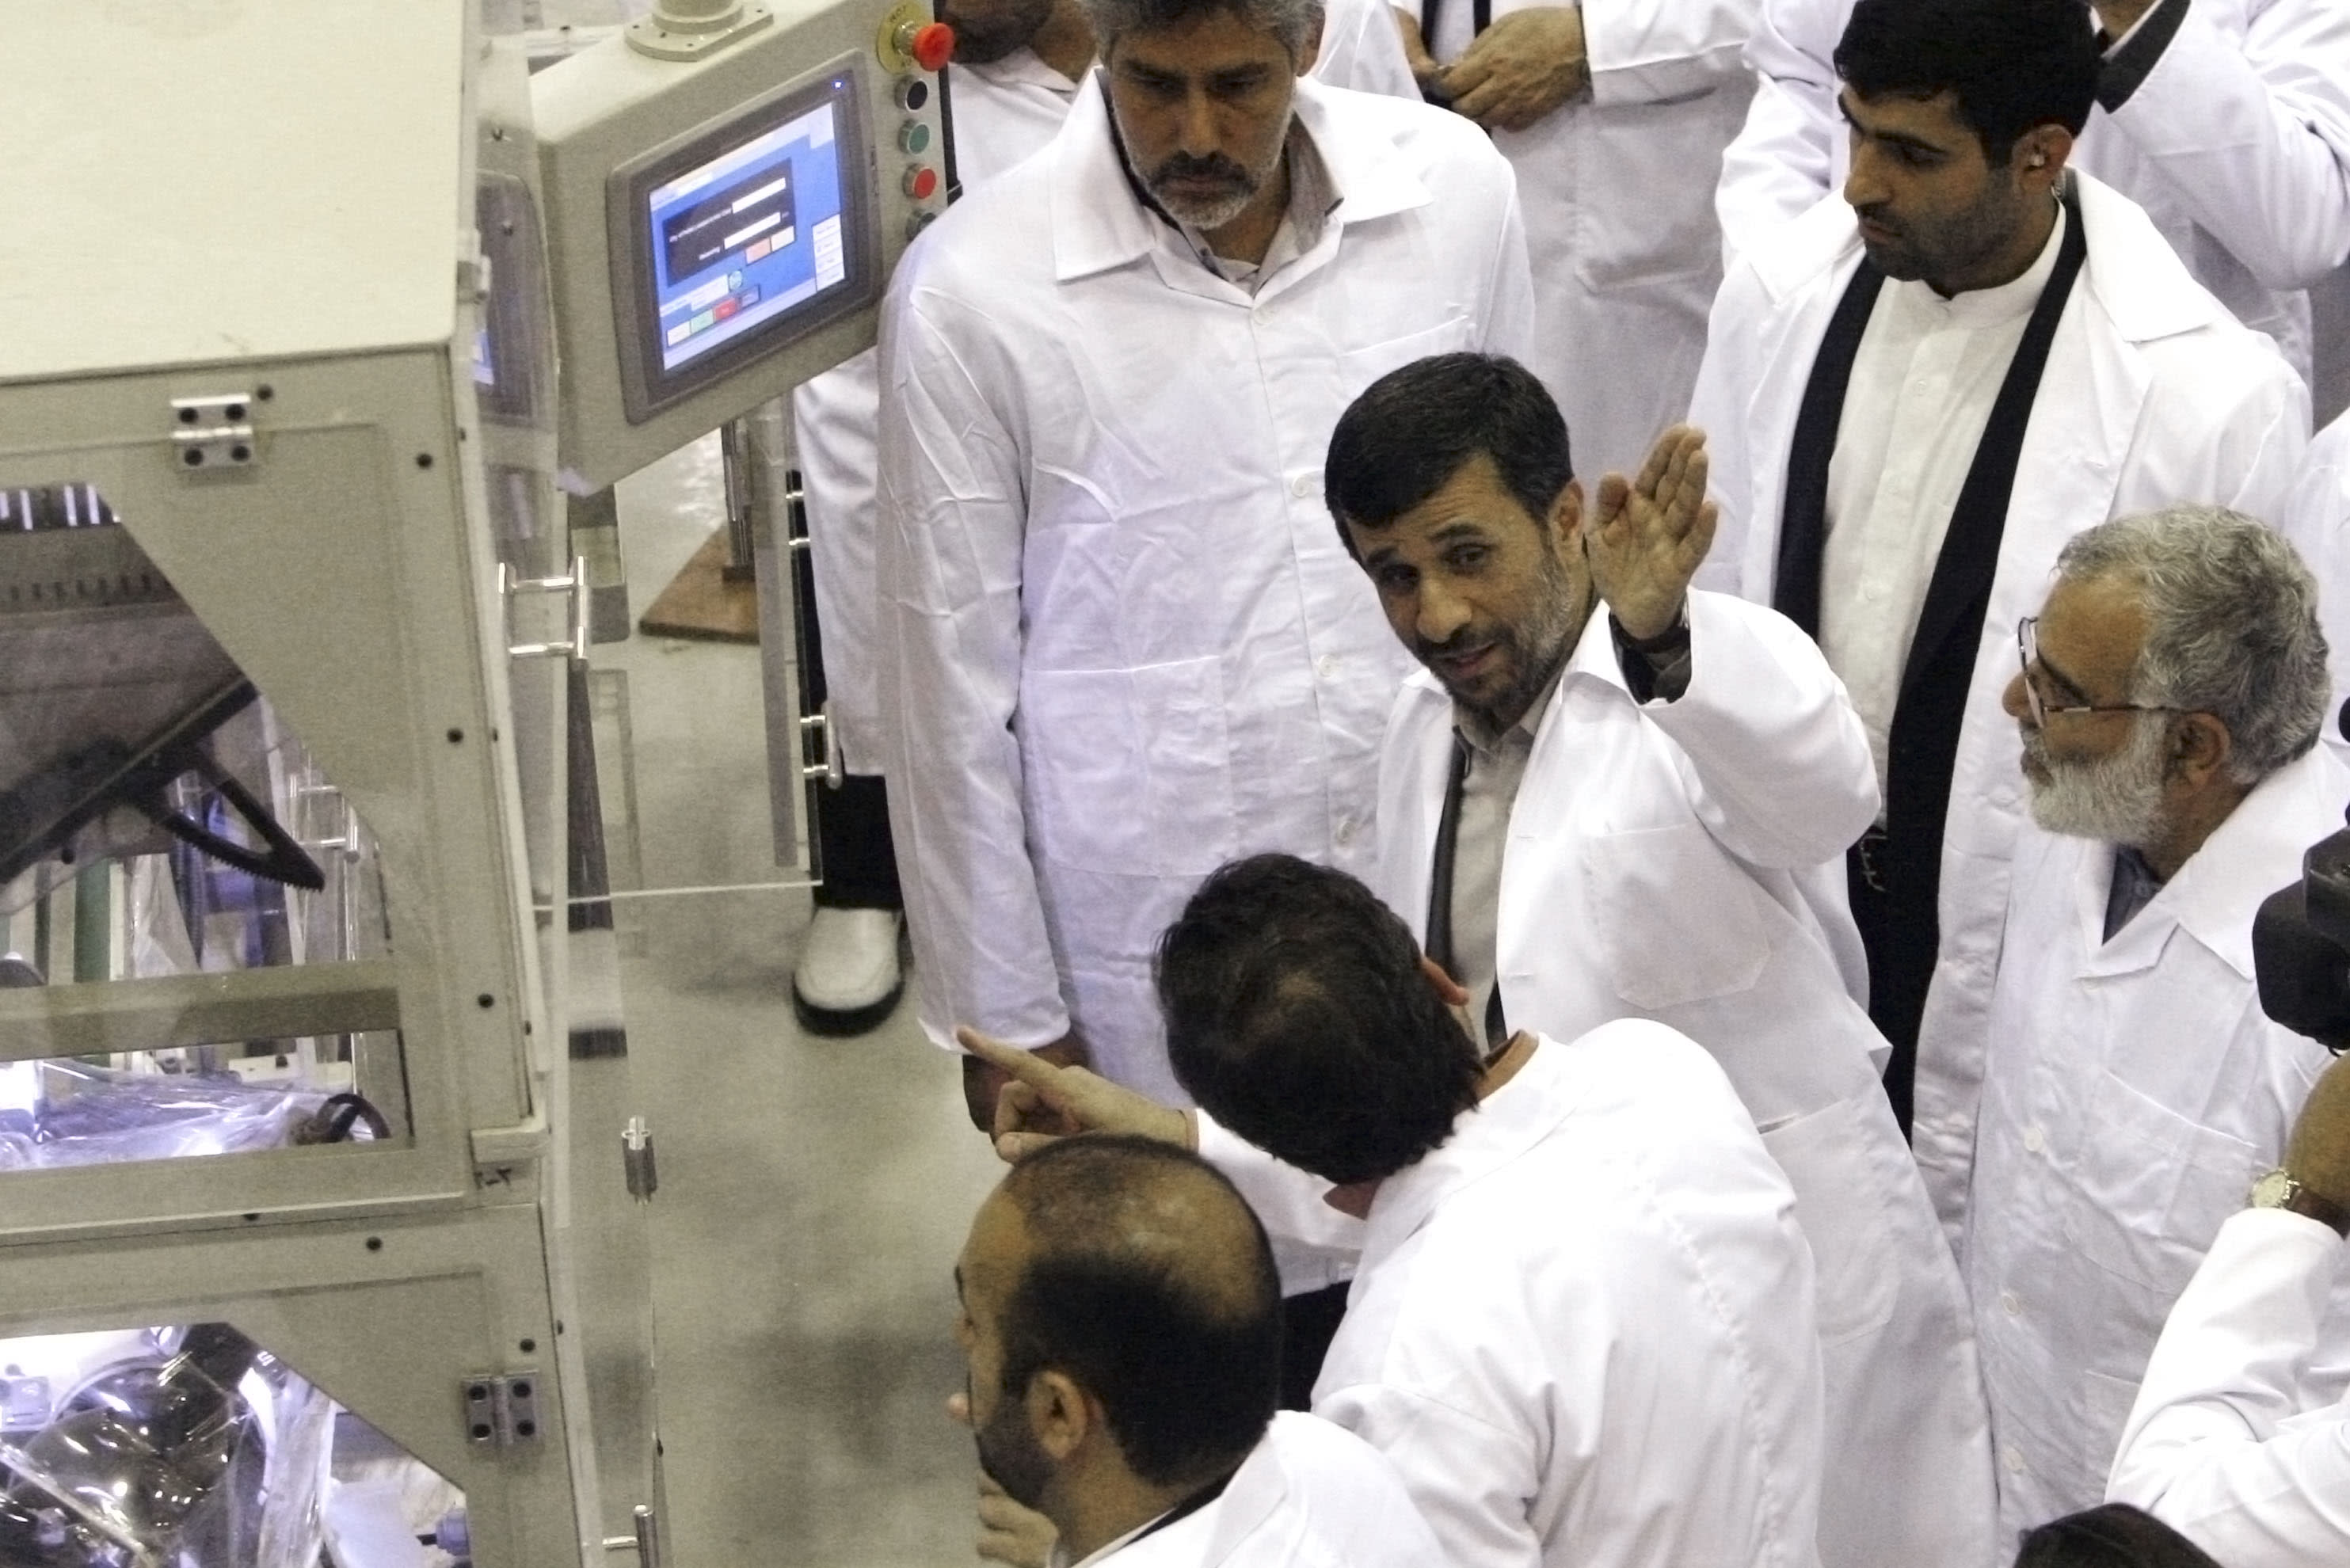 Iranian President Mahmoud Ahmadinejad, second right, gestures, as he visits Iran's Fuel Manufacturing Plant (FMP), a new facility producing uranium fuel for a planned heavy-water nuclear reactor, just outside the city of Isfahan, 255 miles (410 kilometers), south of Tehran, Iran, Thursday, April 9, 2009. The U.S. has plans in place to attack Iran if necessary to prevent it from developing nuclear weapons, Washington's envoy to Israel said, days ahead of a crucial round of nuclear talks with Tehran. (AP Photo/Vahid Salemi, File)